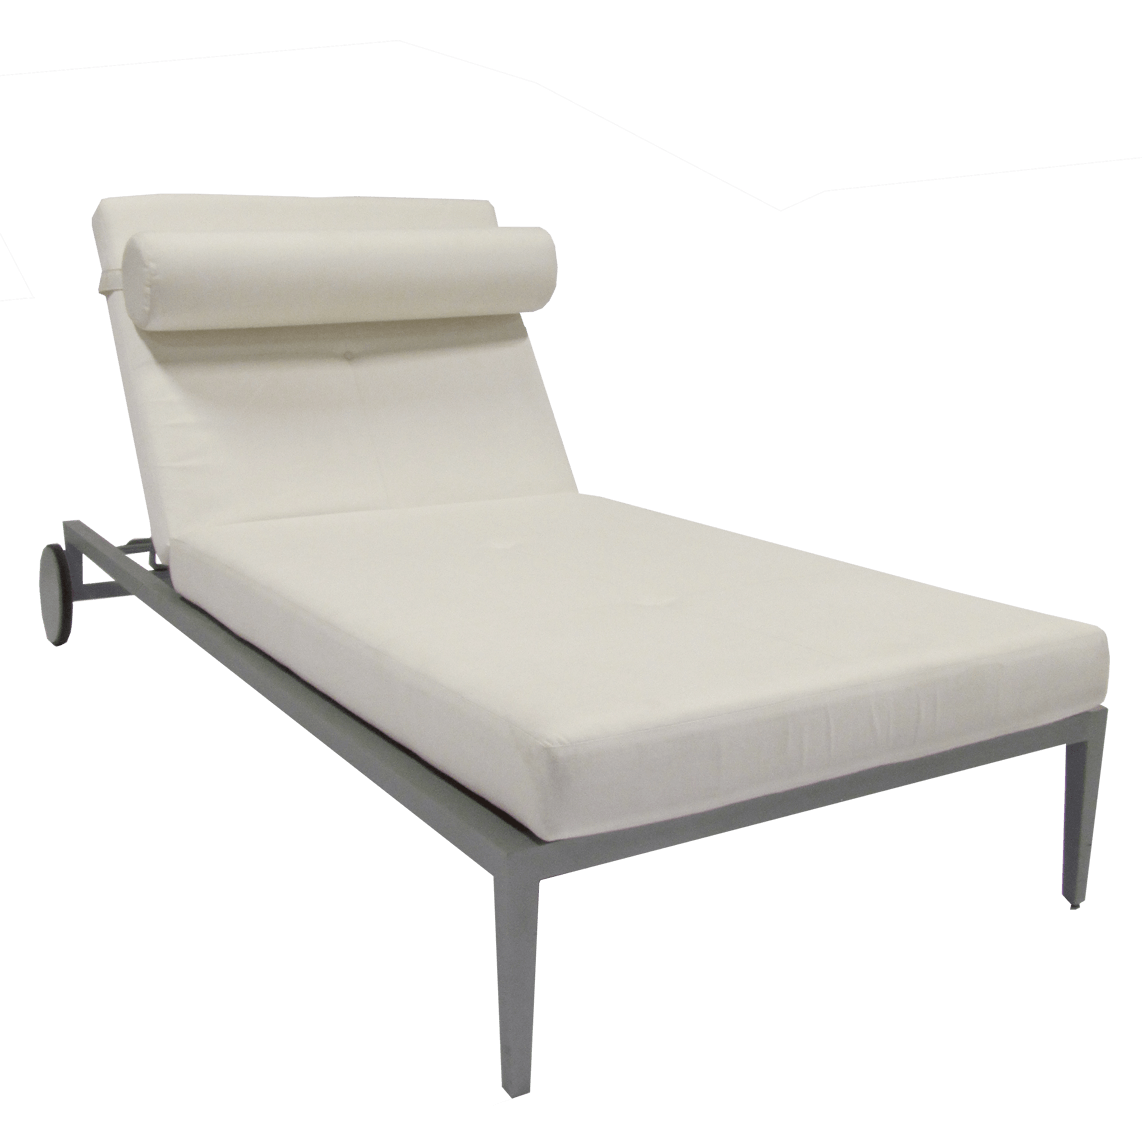 outdoor chaise lounge chairs with wheels tempurpedic chair tp9000 archetype kdrshowrooms com